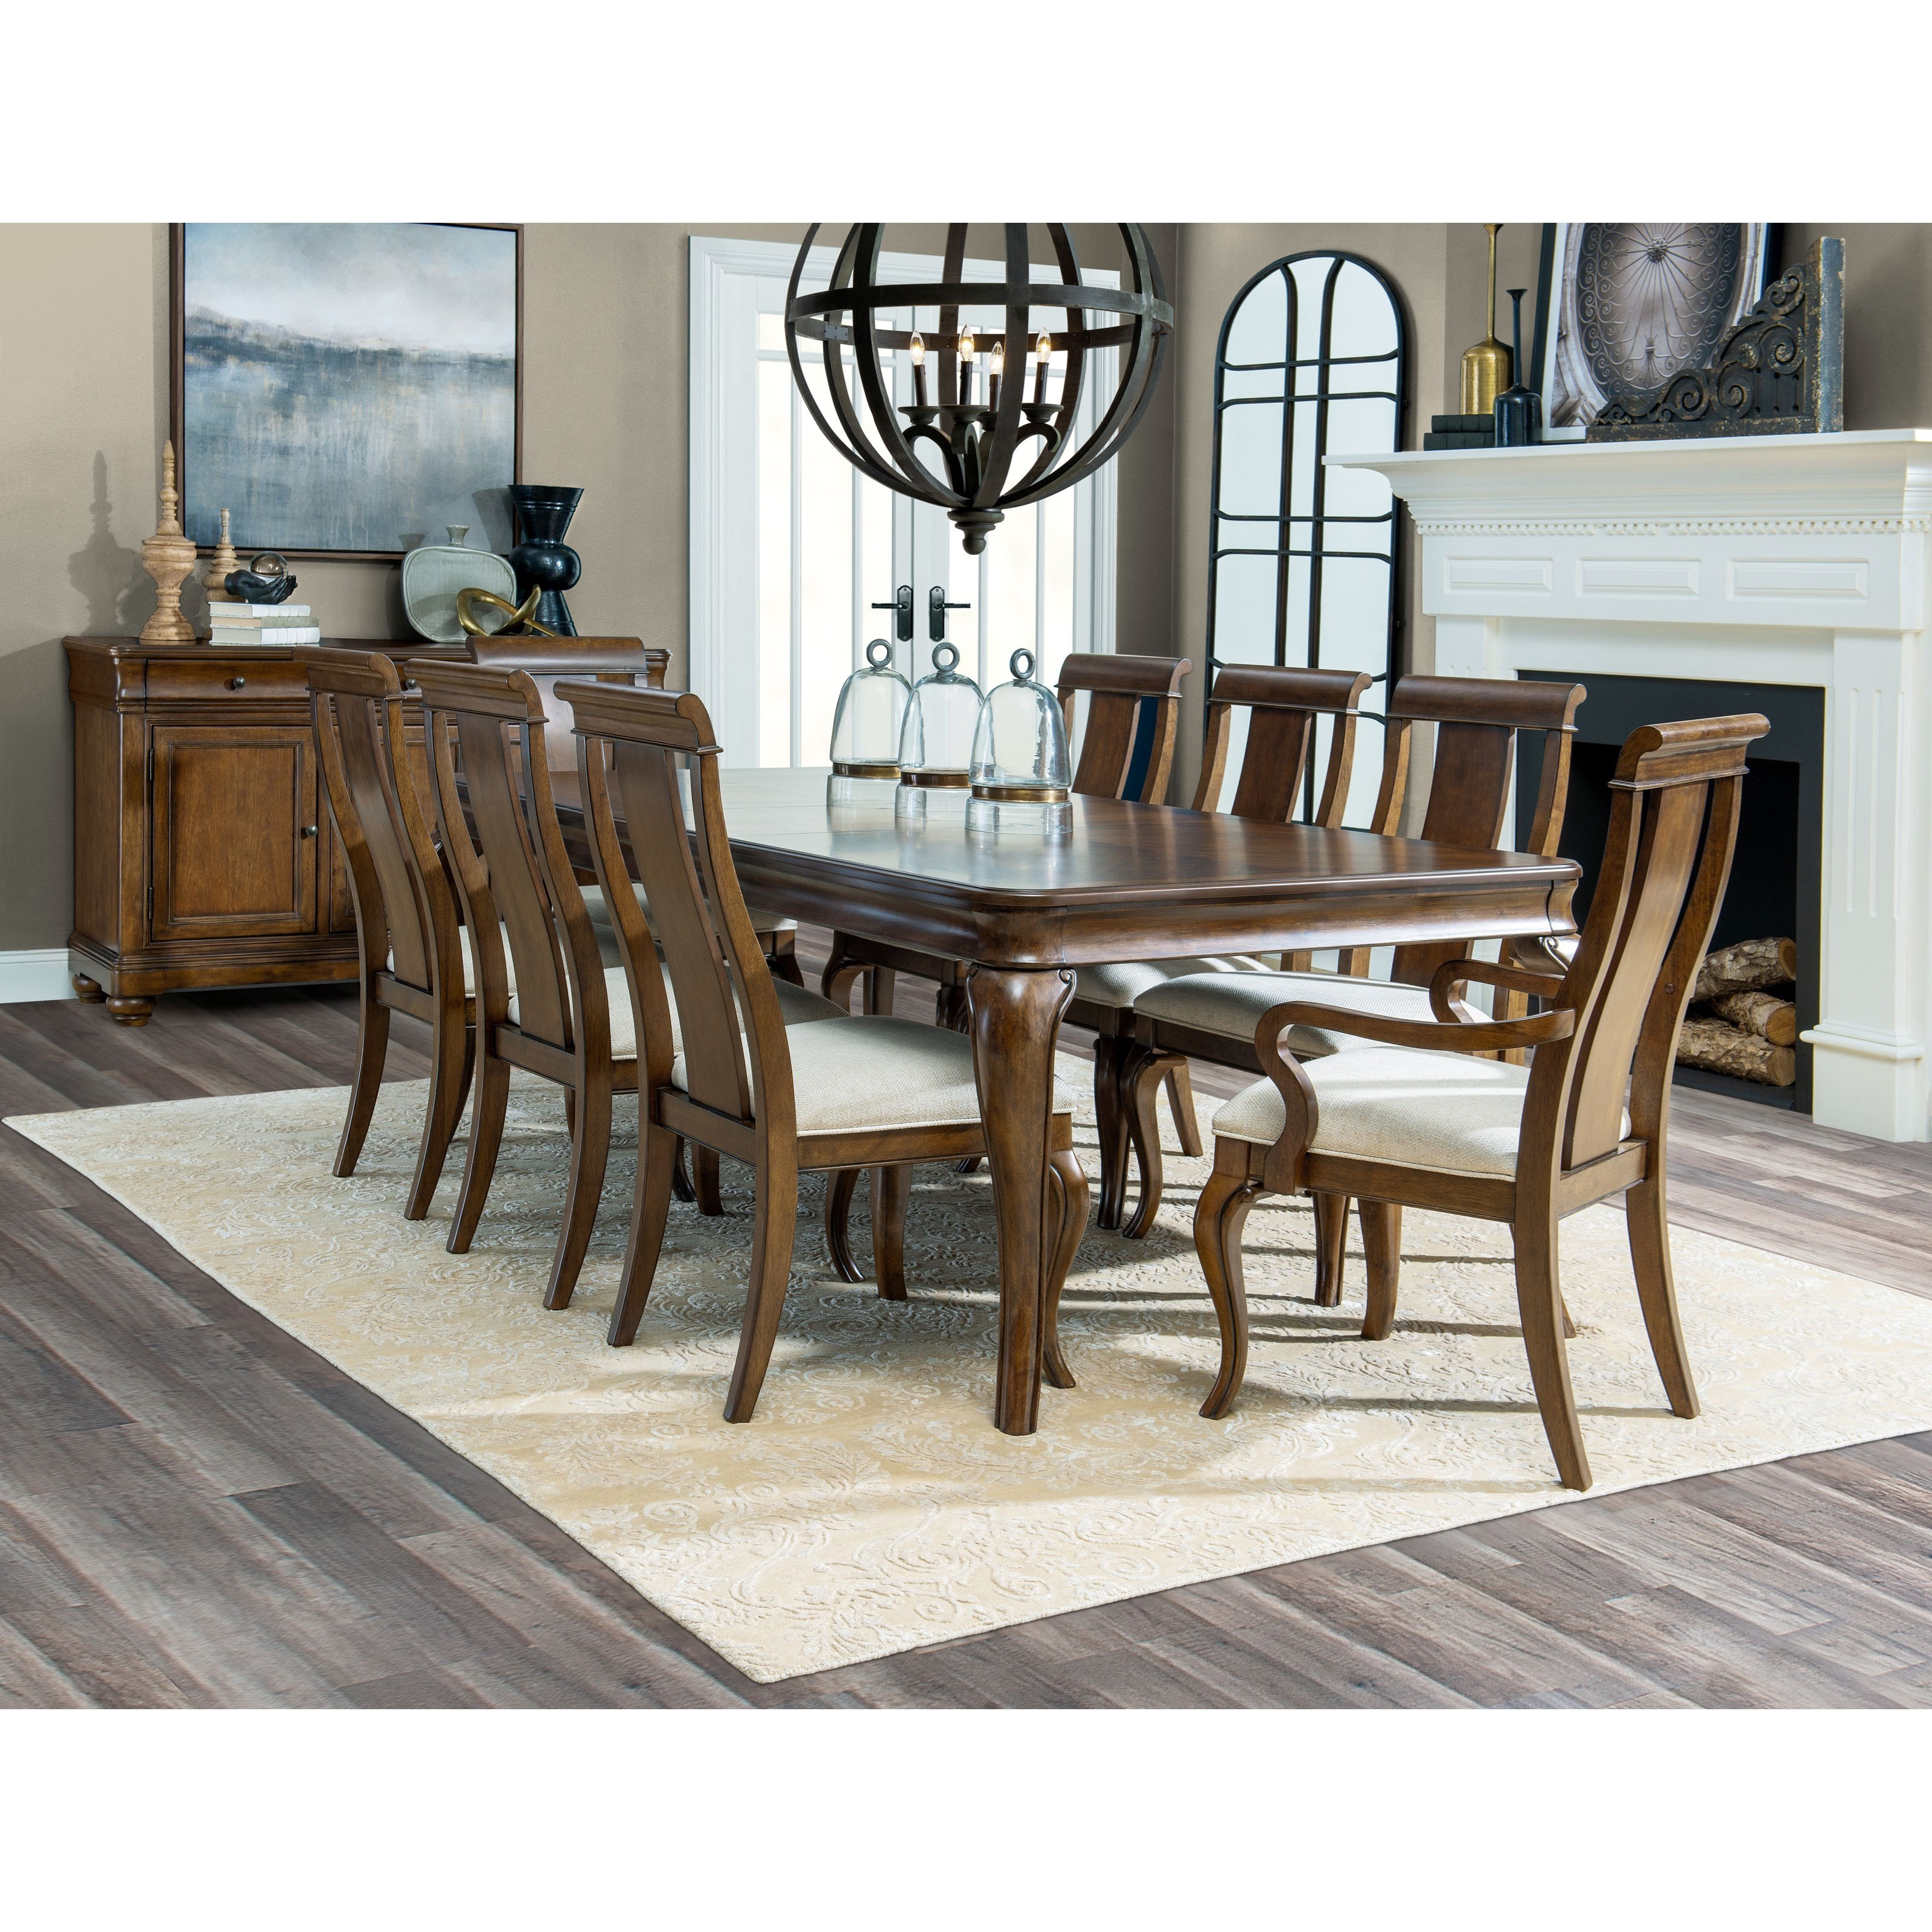 Coventry Formal Dining Room Group by Legacy Classic at Stoney Creek Furniture